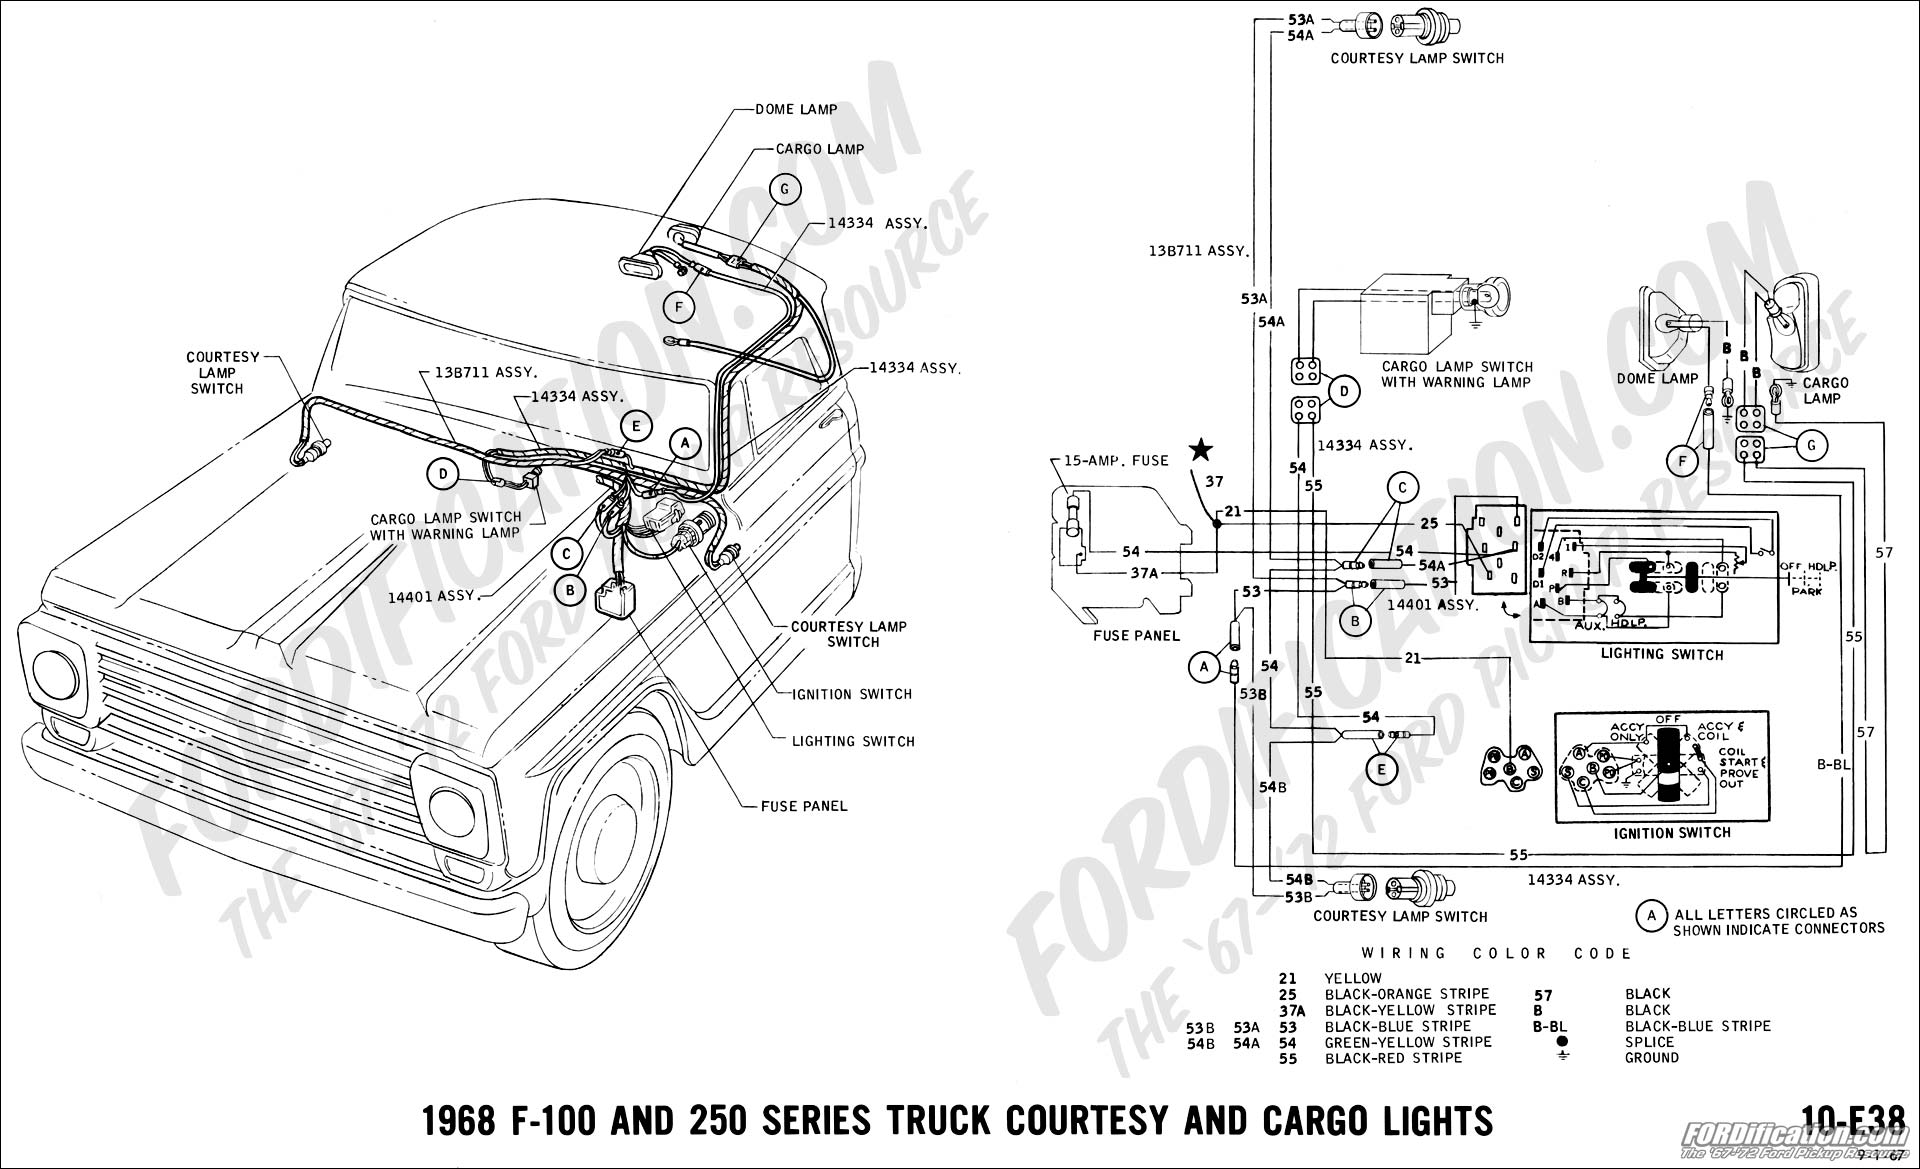 68 40 ford truck technical drawings and schematics section h wiring truck camper wiring diagram at alyssarenee.co